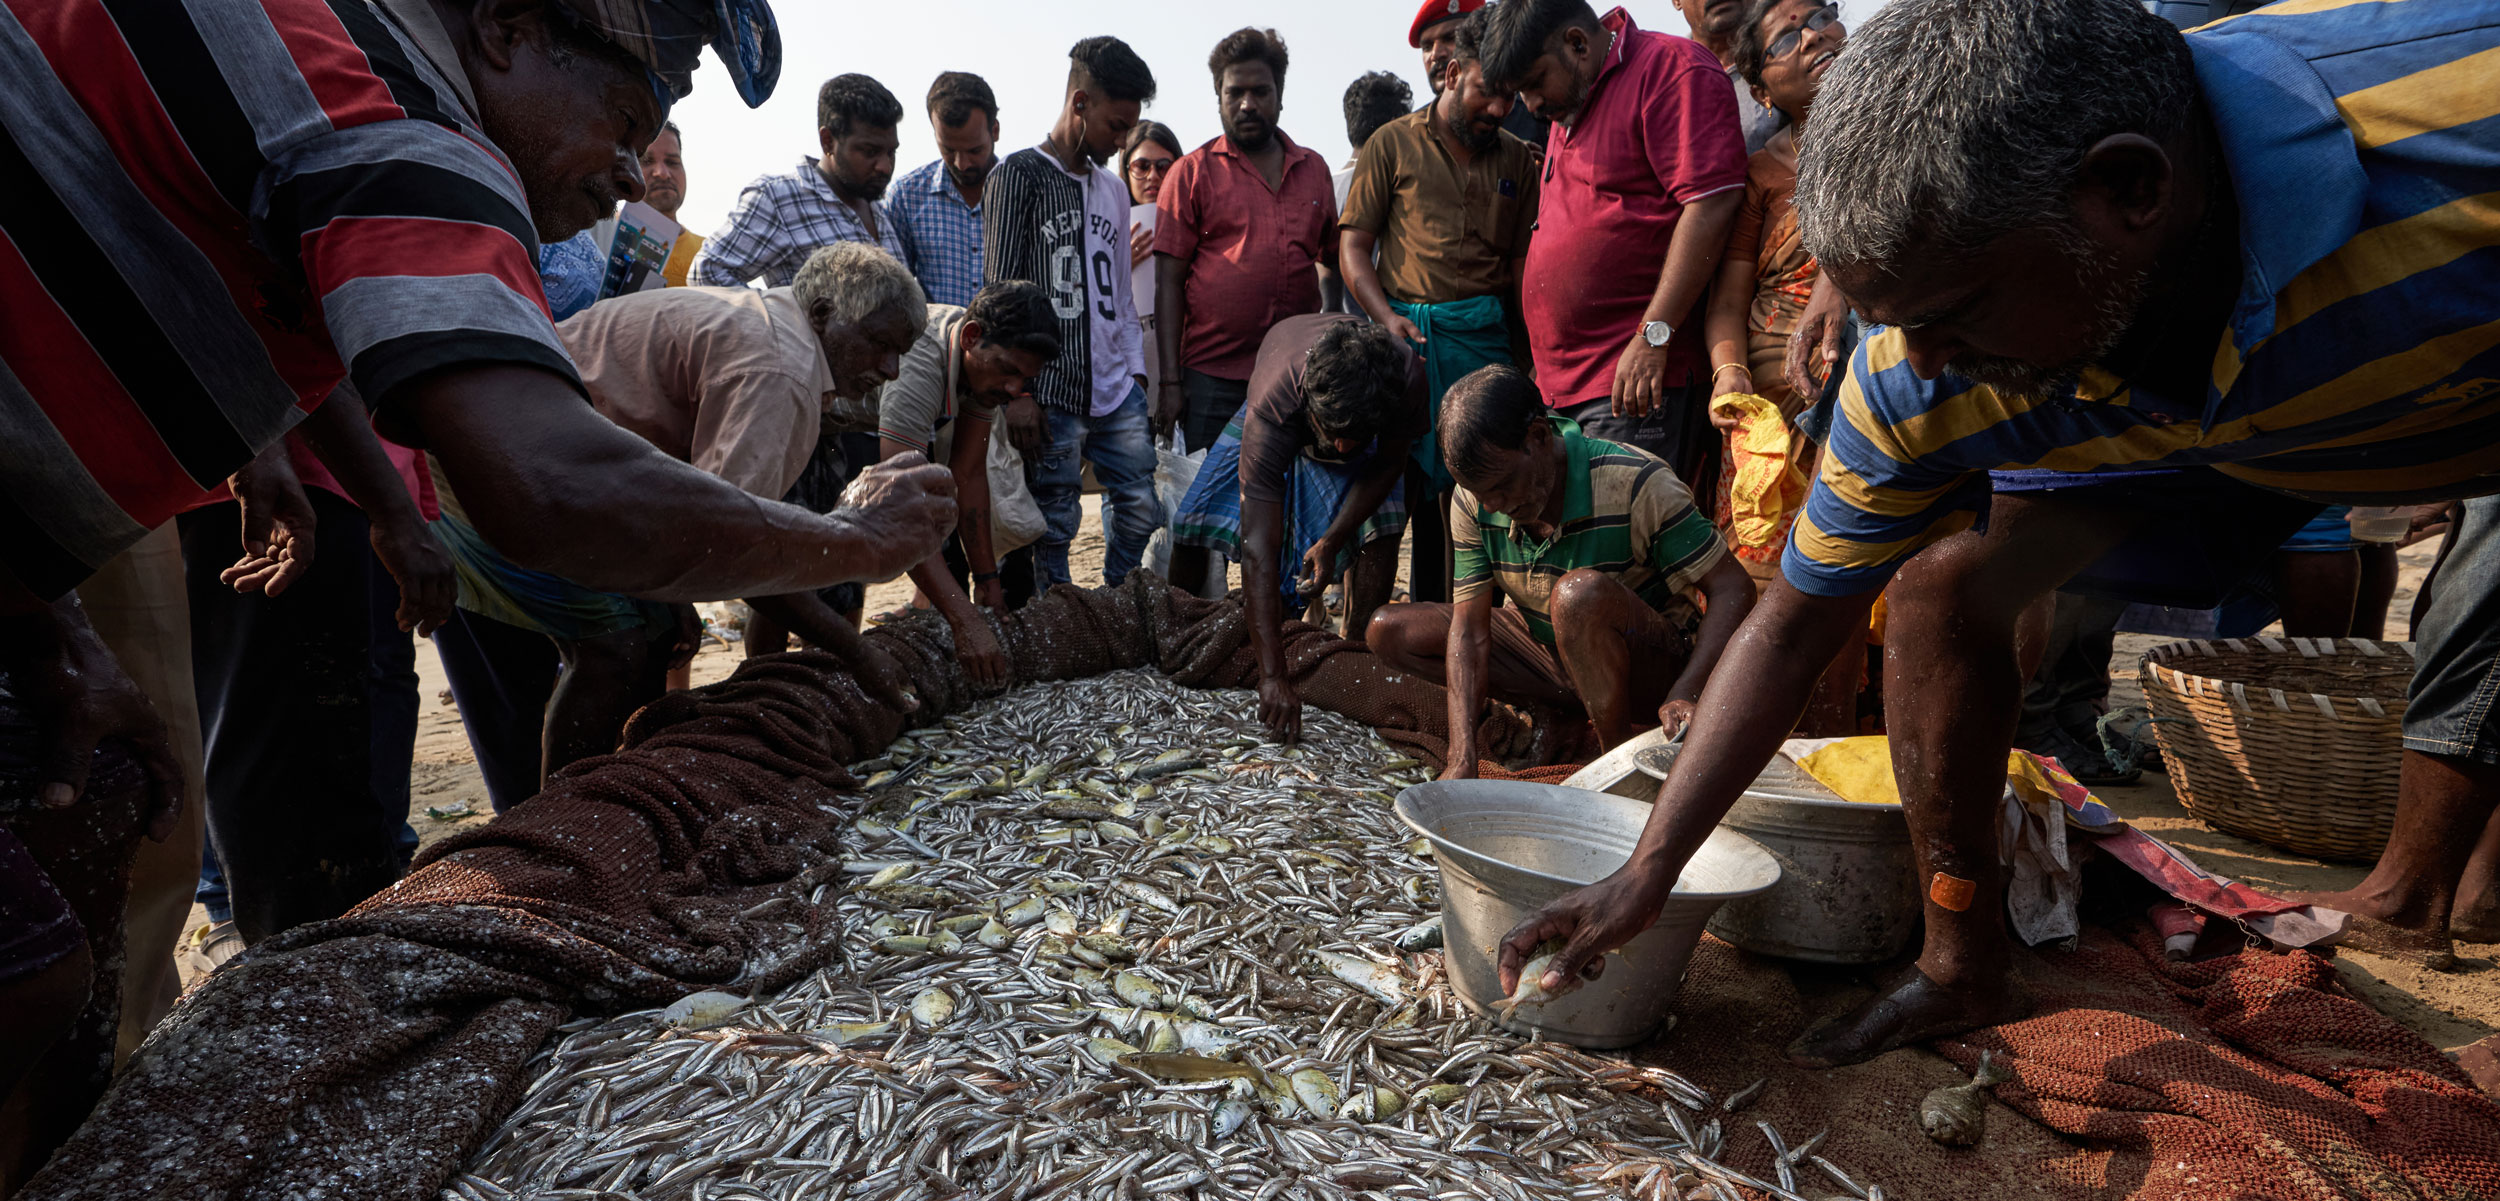 fishers sorting fish in Chennai, India